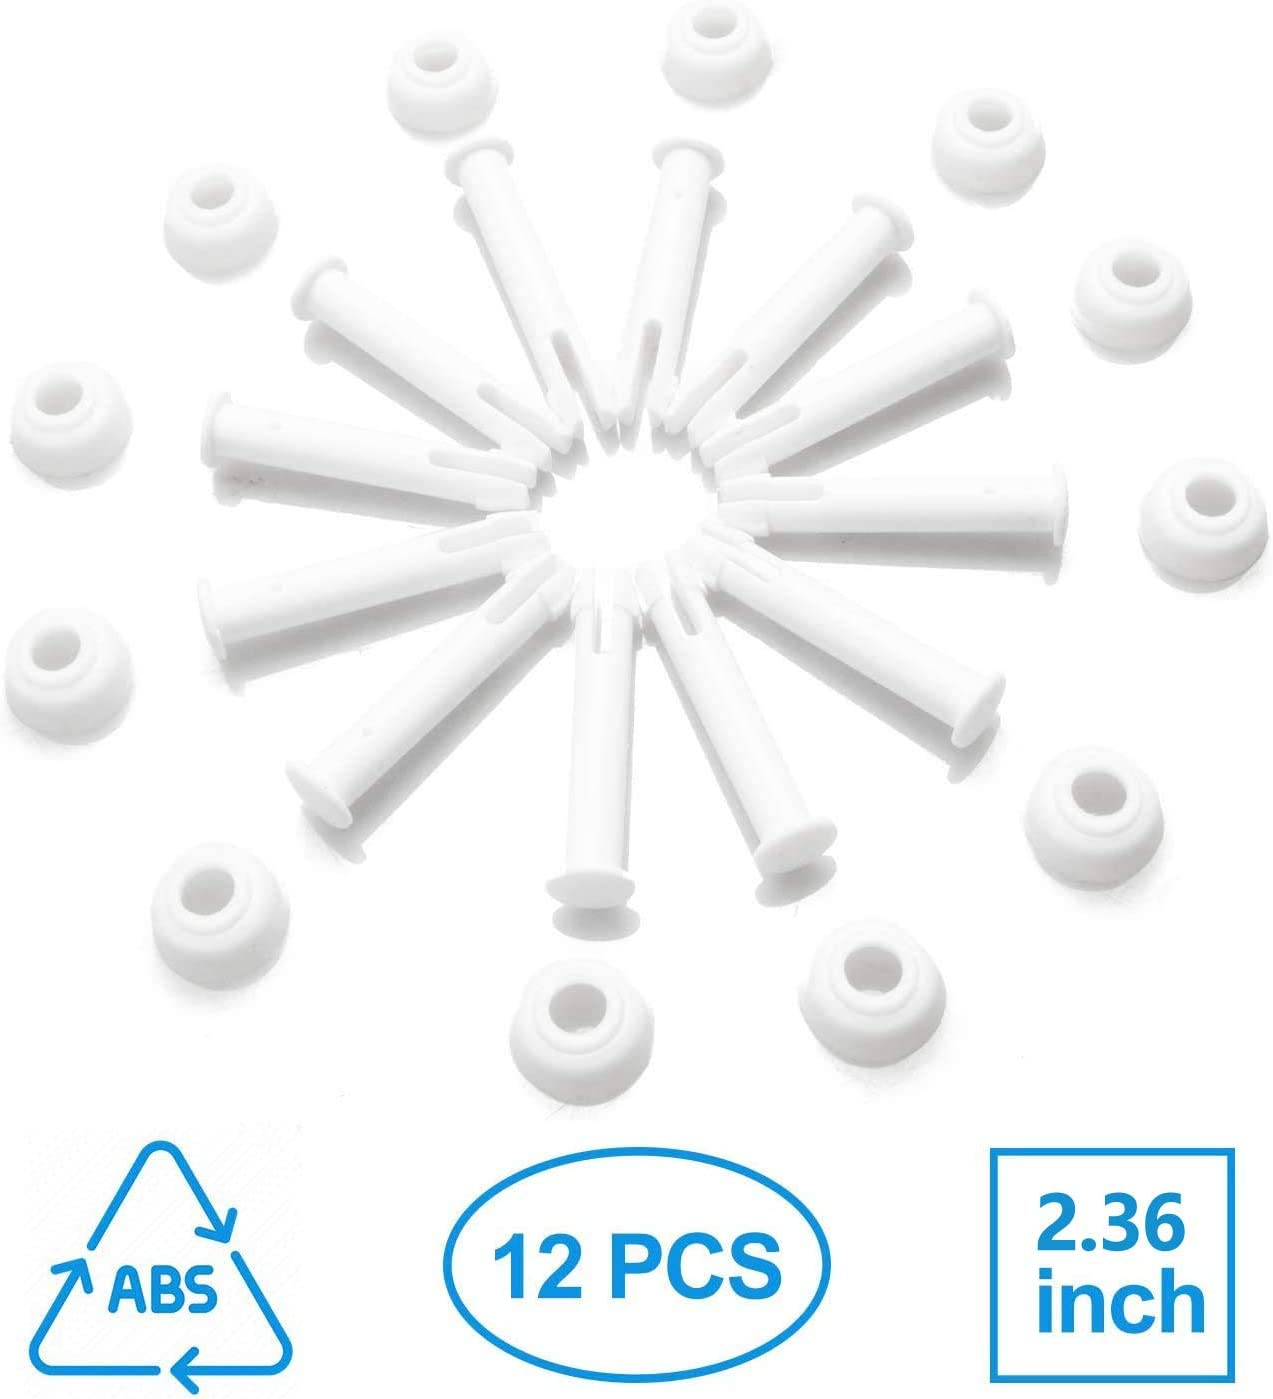 Ponwec 12 PCS Plastic Pool Joint Pins 10312 (2.36in) for Intex 13ft -24ft (2015 & Before) 10ft-12ft (2016 & After) Metal & Prism Frame Pools with Extra Rubber Seals Pool Replacement Parts